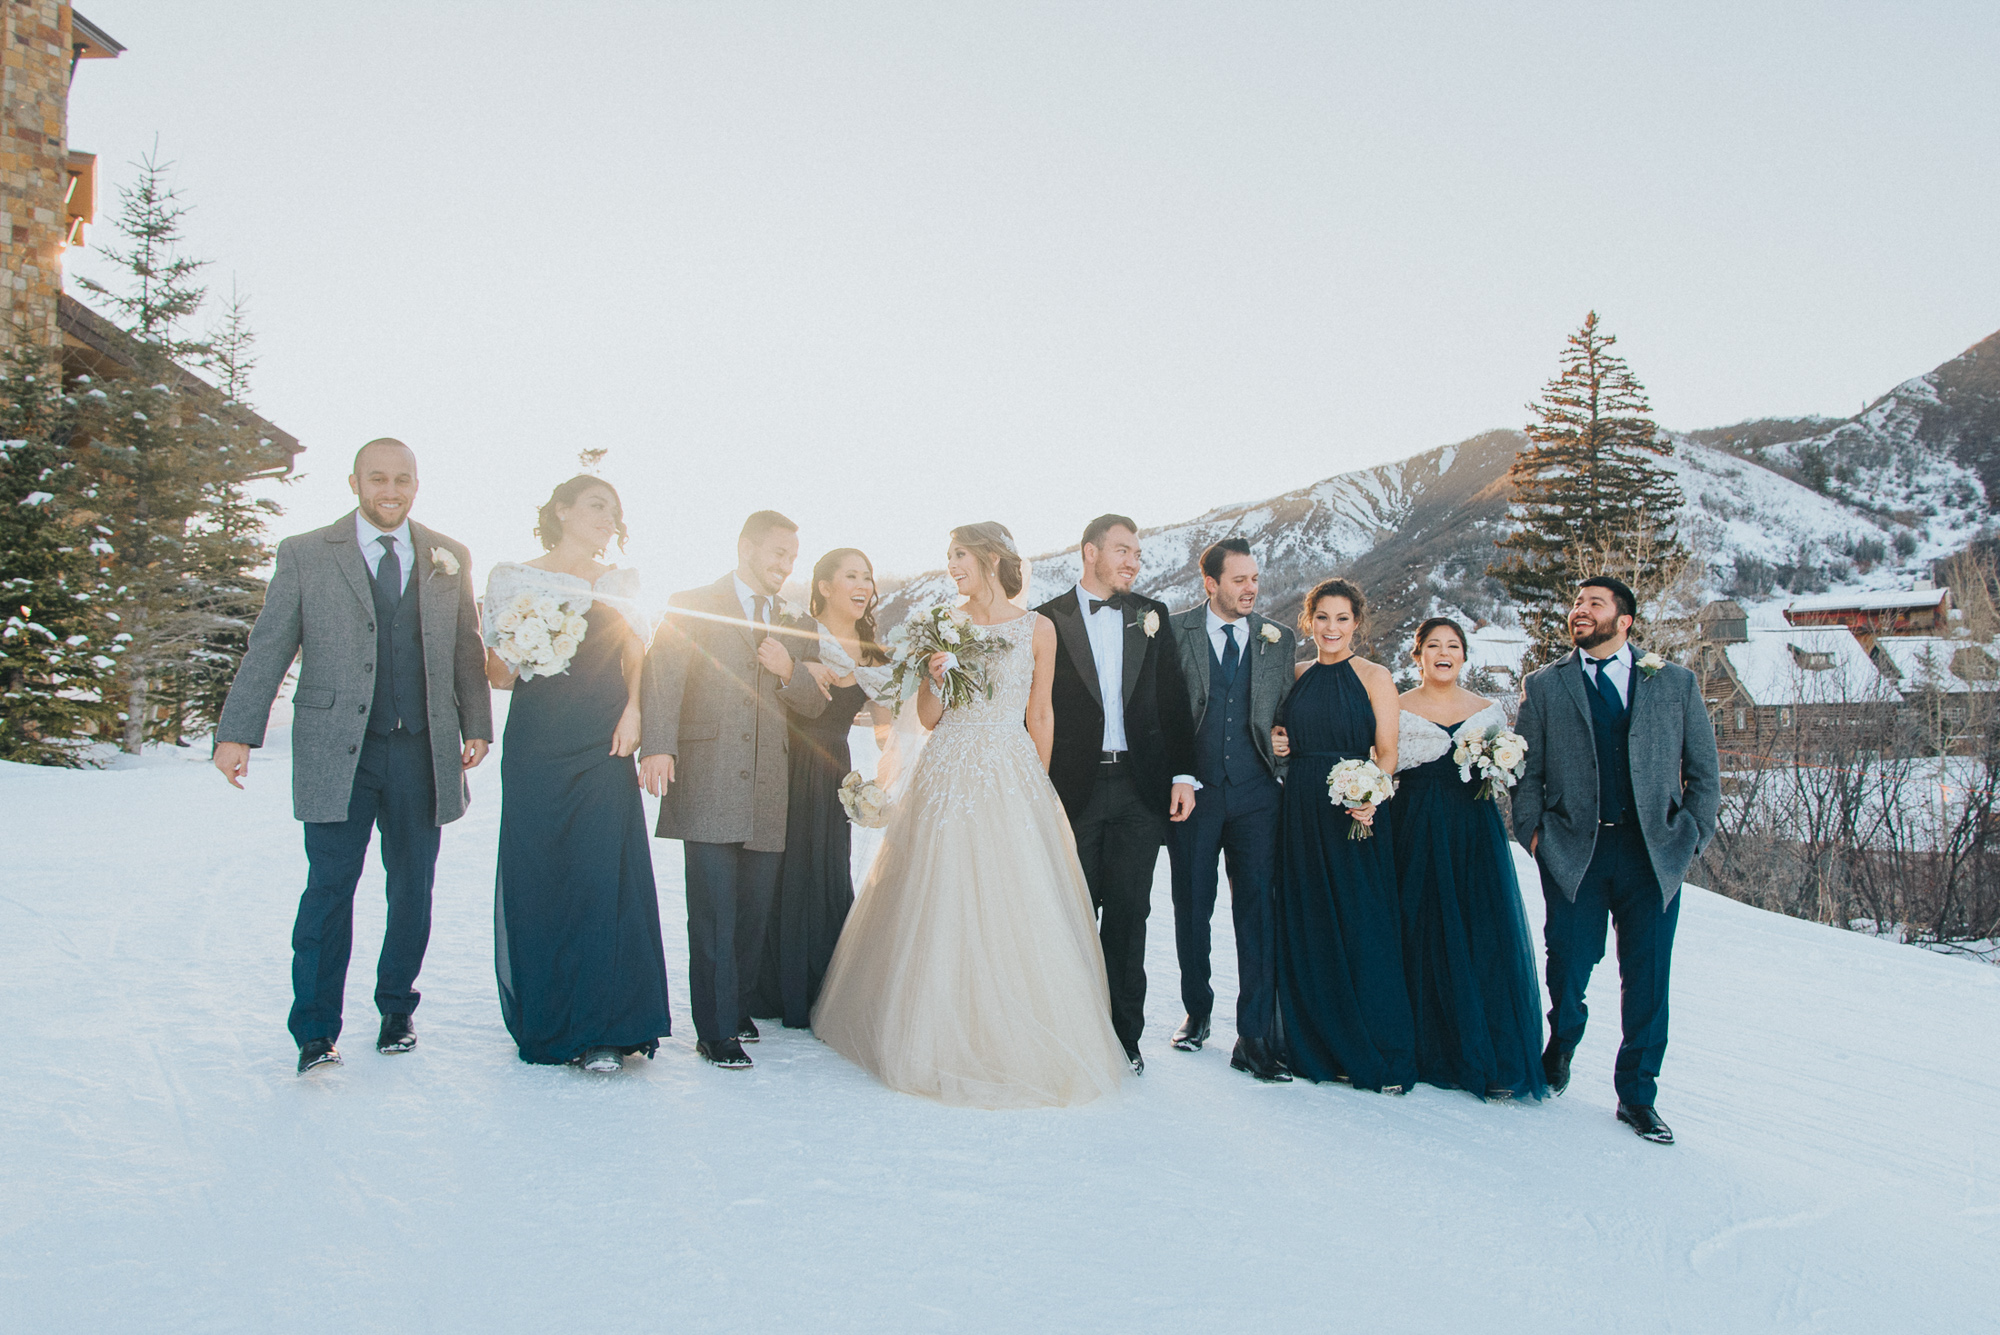 Wedding party portait under ski lift at Viceroy Snowmass